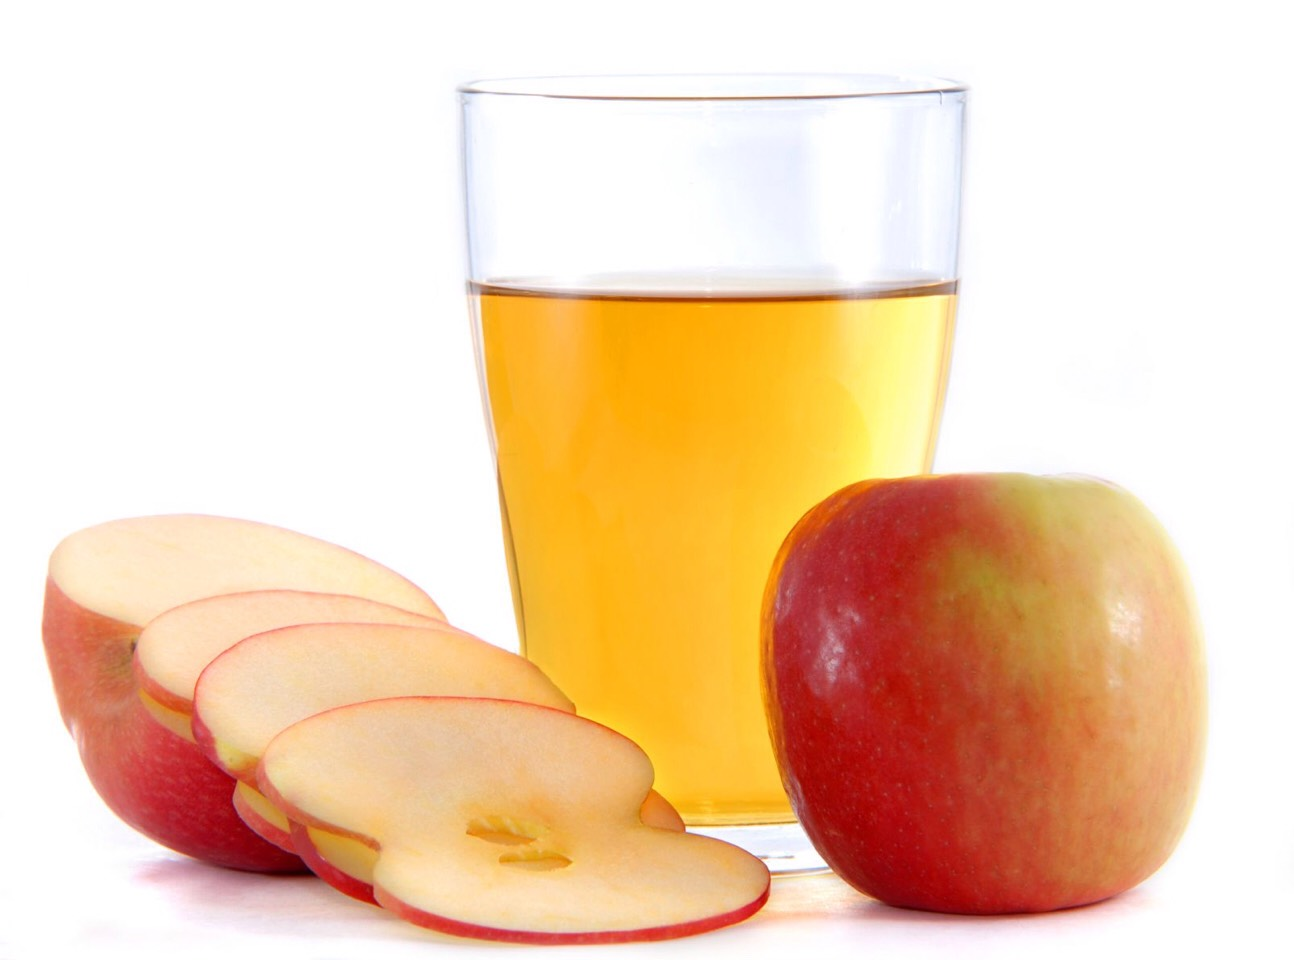 Use white vinegar or apple cider vinegar. Add 1/2 cup to a Sitz bath with lukewarm water and soak for a few minutes.